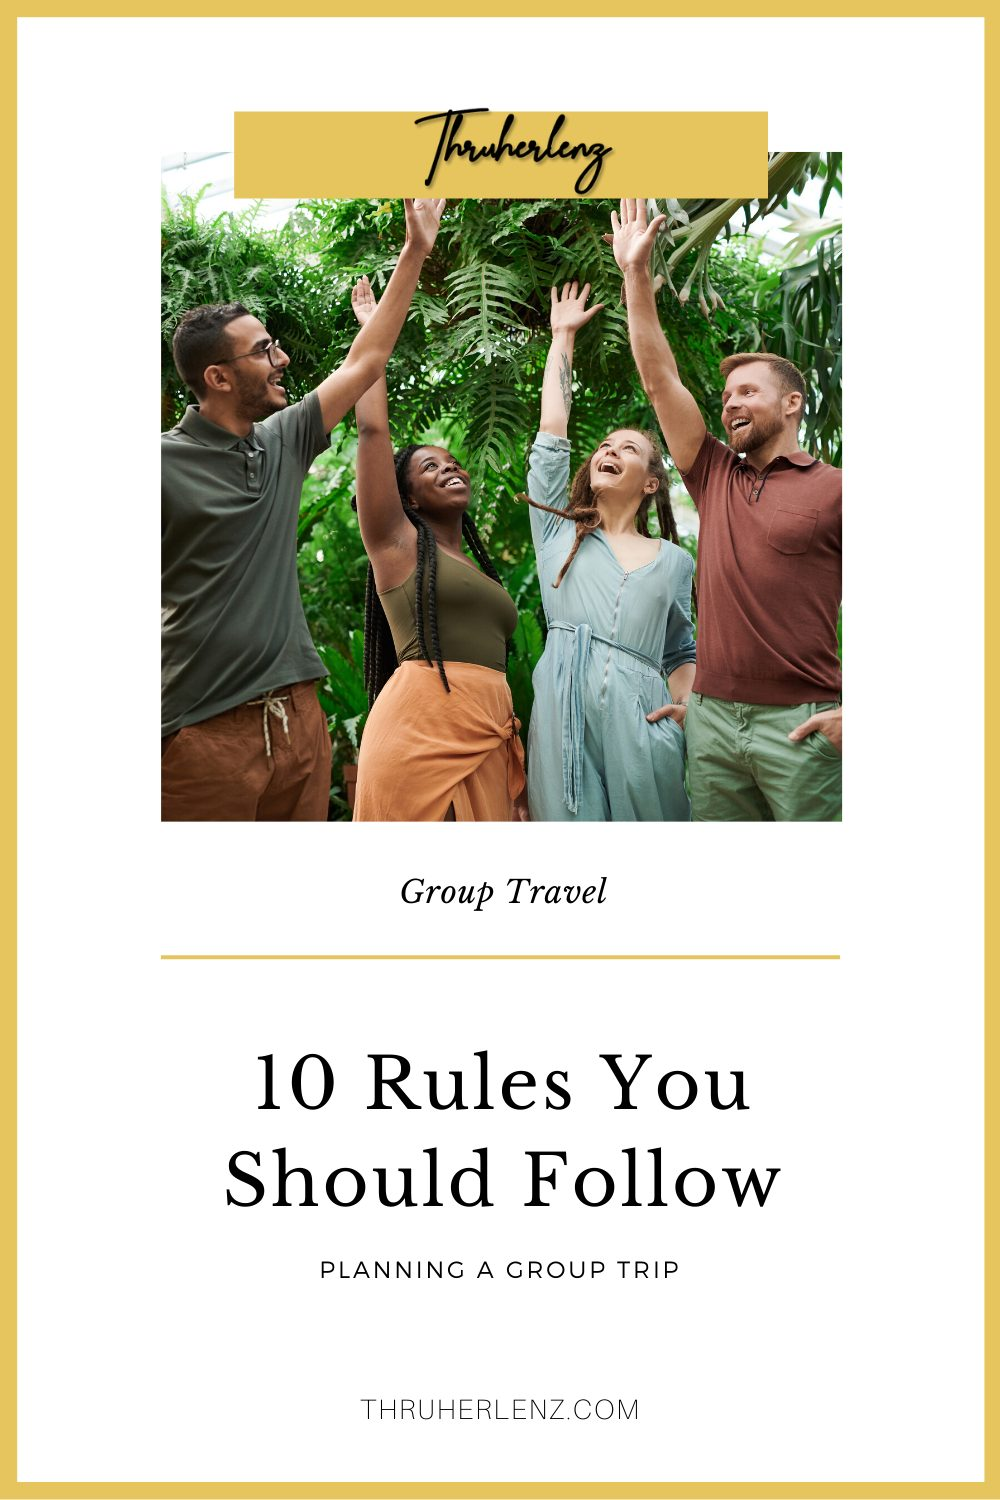 Group Travel: 10 Foolproof Rules for Traveling with Others